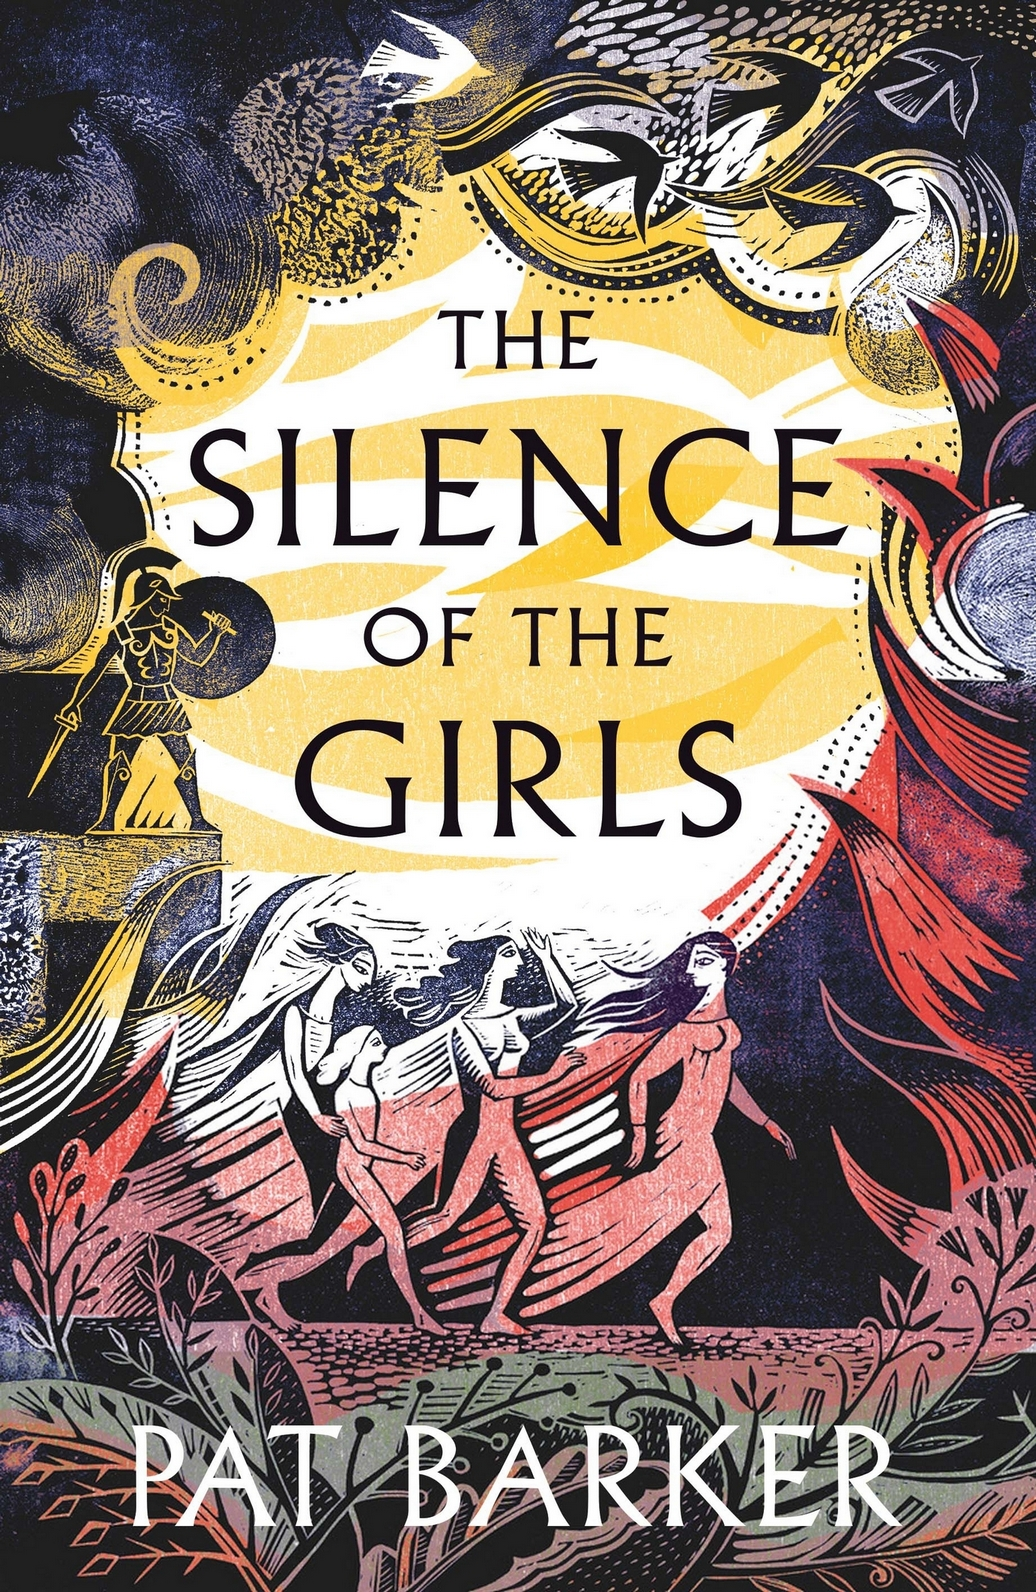 The silence of the girls -bibliophile review